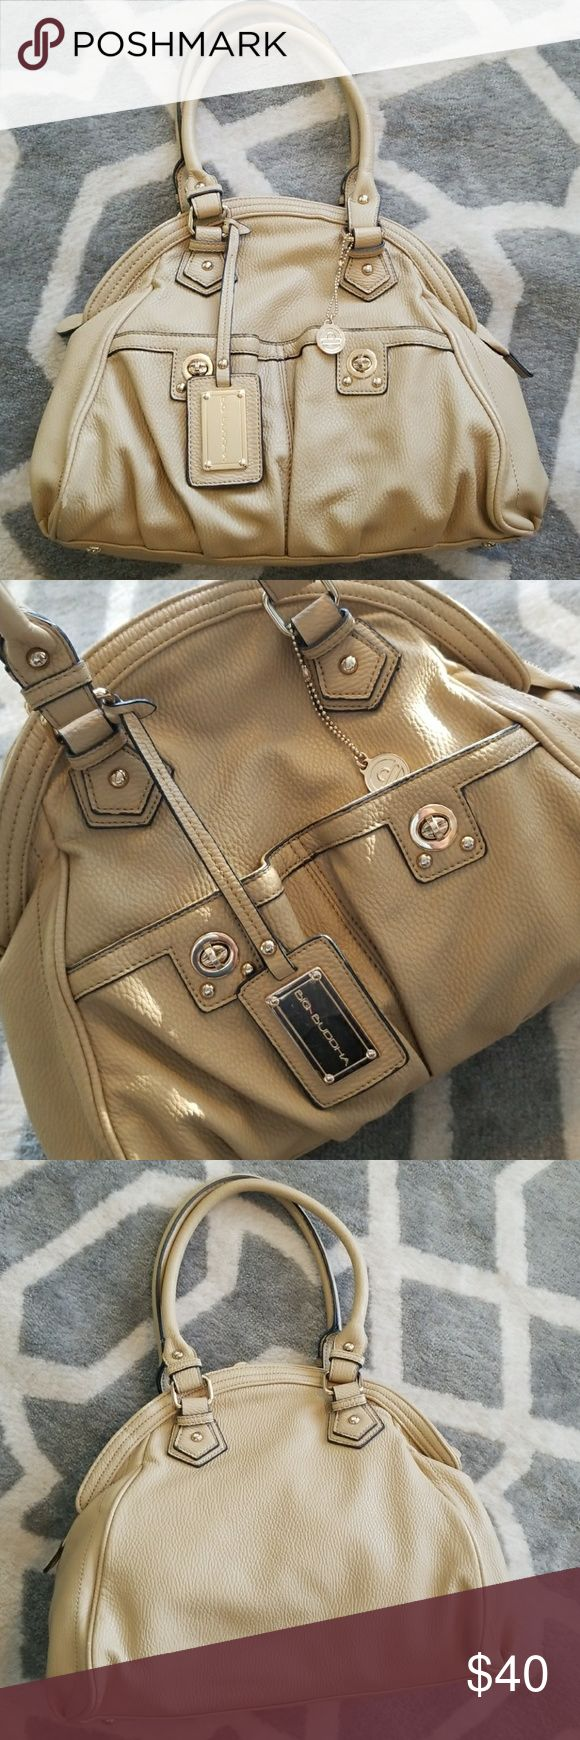 """Big Buddha bag Beautiful bag by Big Buddha in great condition!! Approx 14"""" long and 12"""" tall- can be carried on shoulder or as a crossbody! Minor signs of wear as shown in last two photos.  Bundle for a discount!! Always fast shipping!! Big Buddha Bags"""